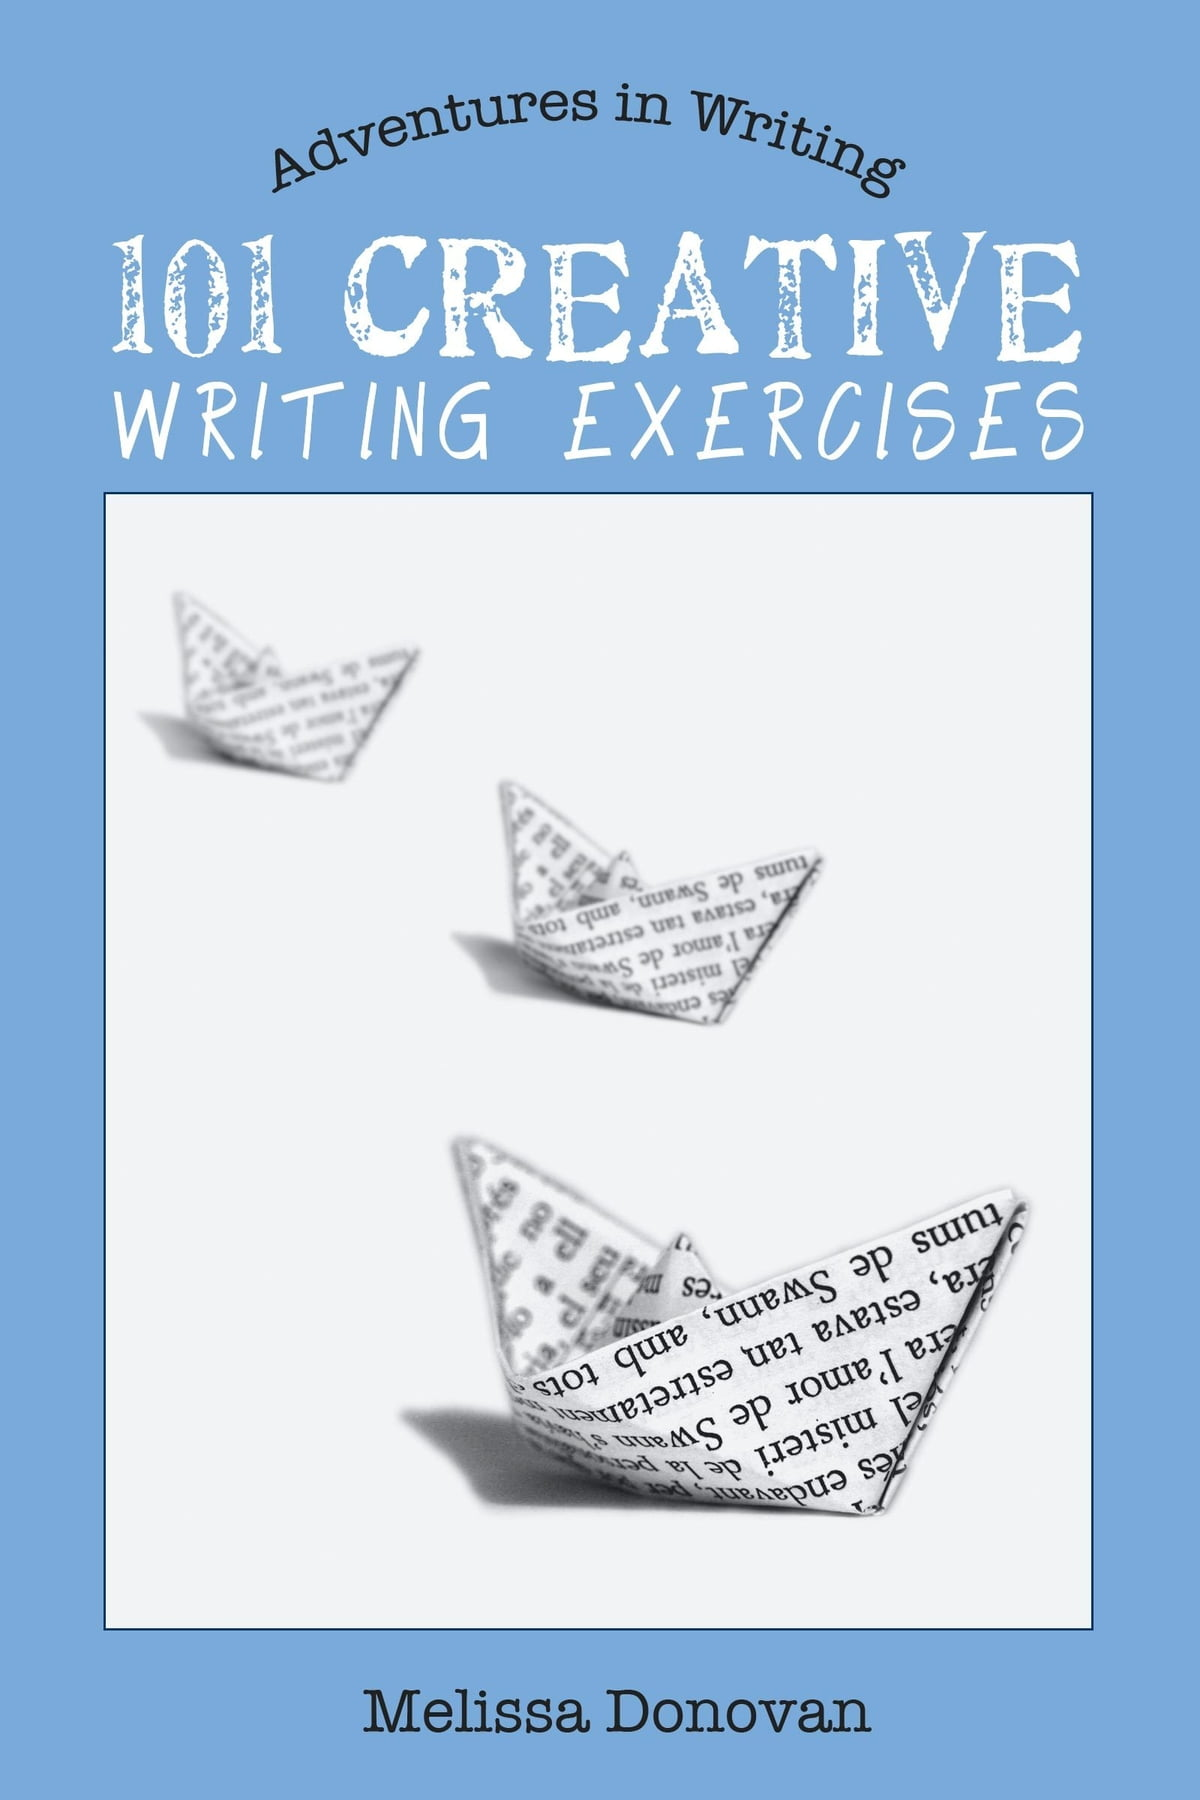 101 Creative Writing Exercises (Adventures in Writing) eBook by Melissa  Donovan - 9781452443447 | Rakuten Kobo